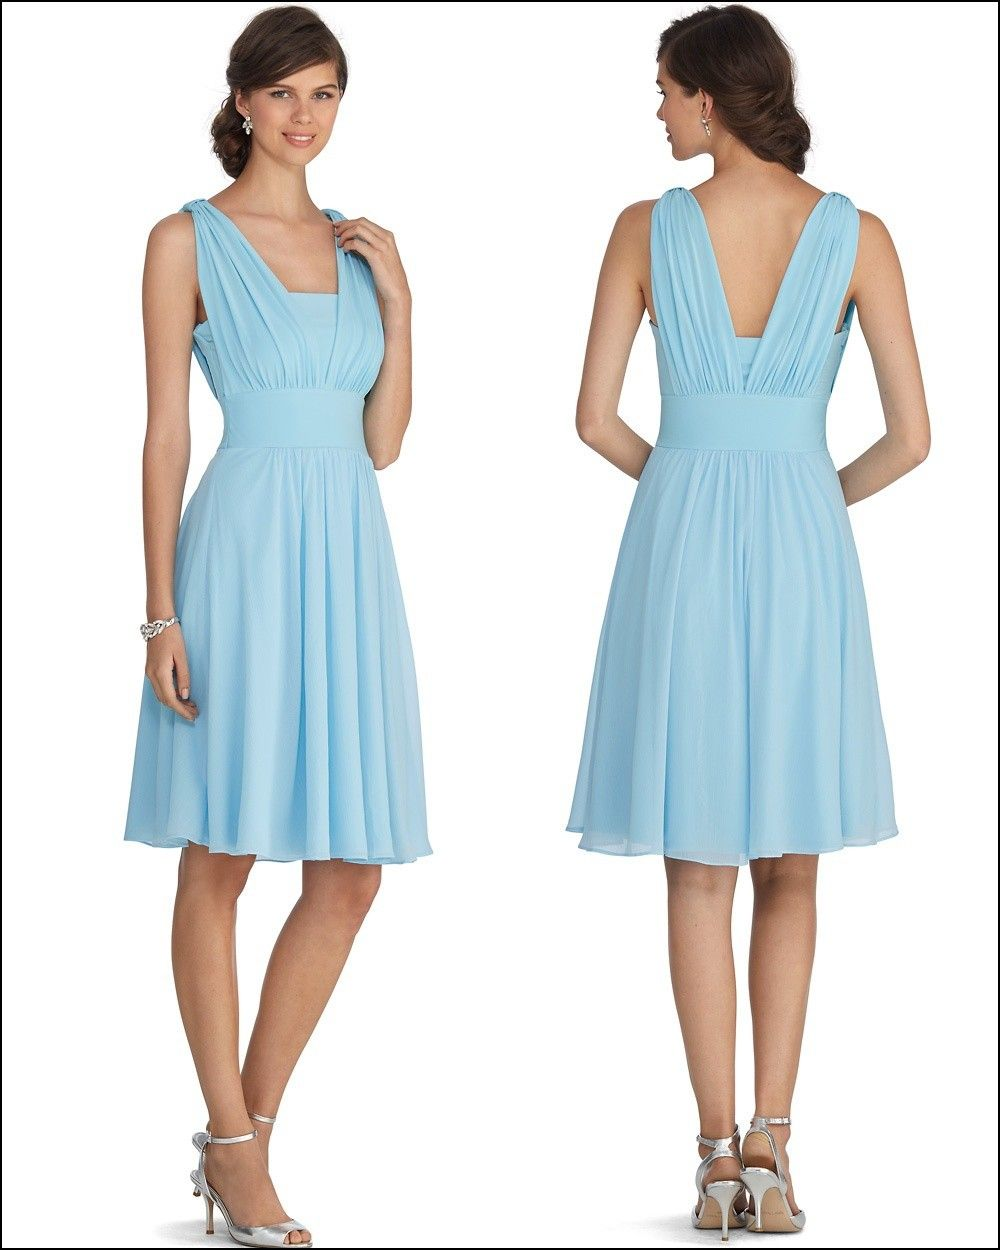 Ball gowns under 50 dollars dresses white bridesmaid